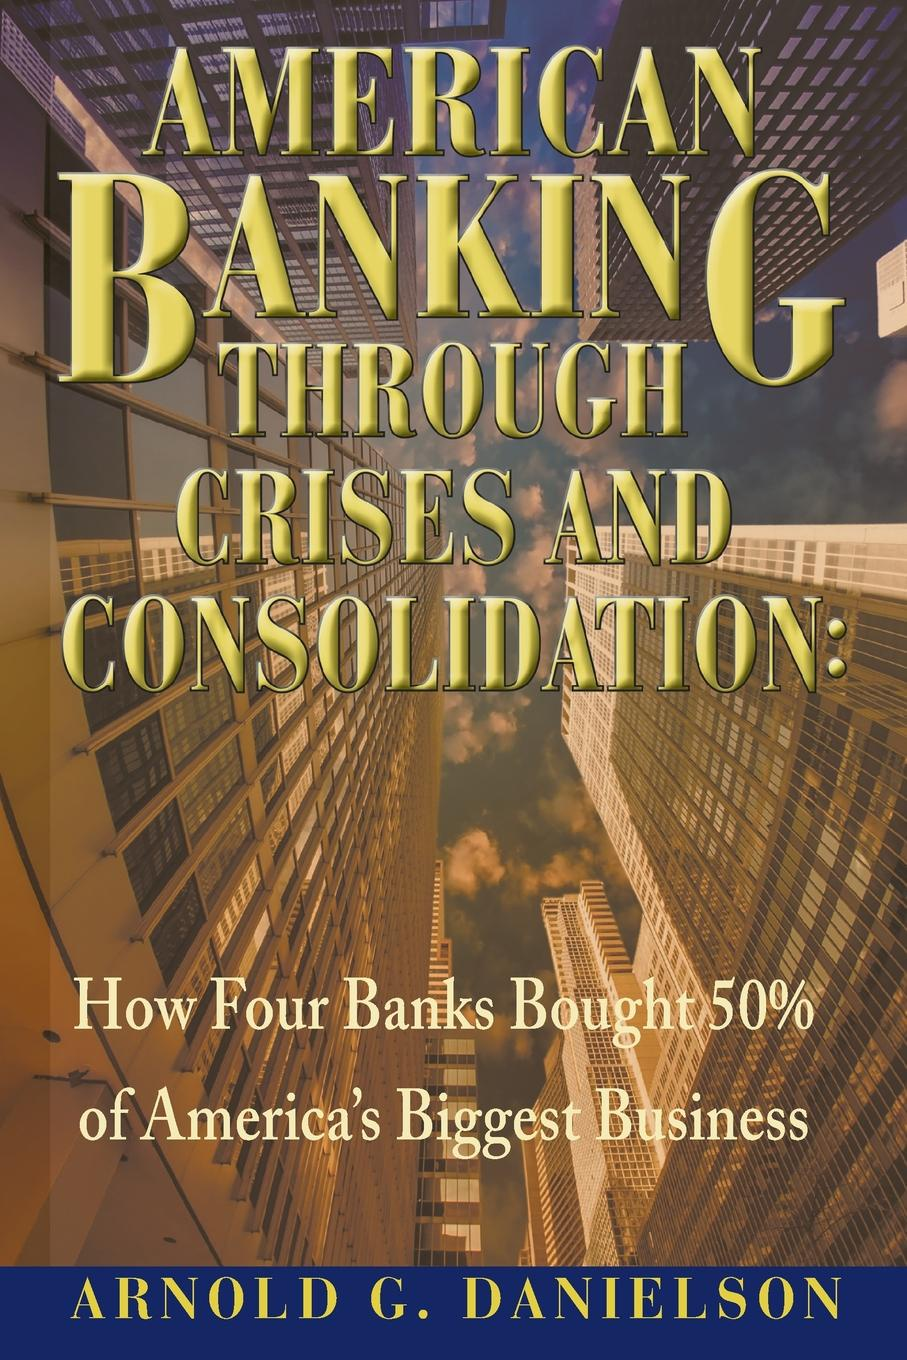 American Banking Through Crises and Consolidation. How Four Banks Bought 50% of America's Biggest Business